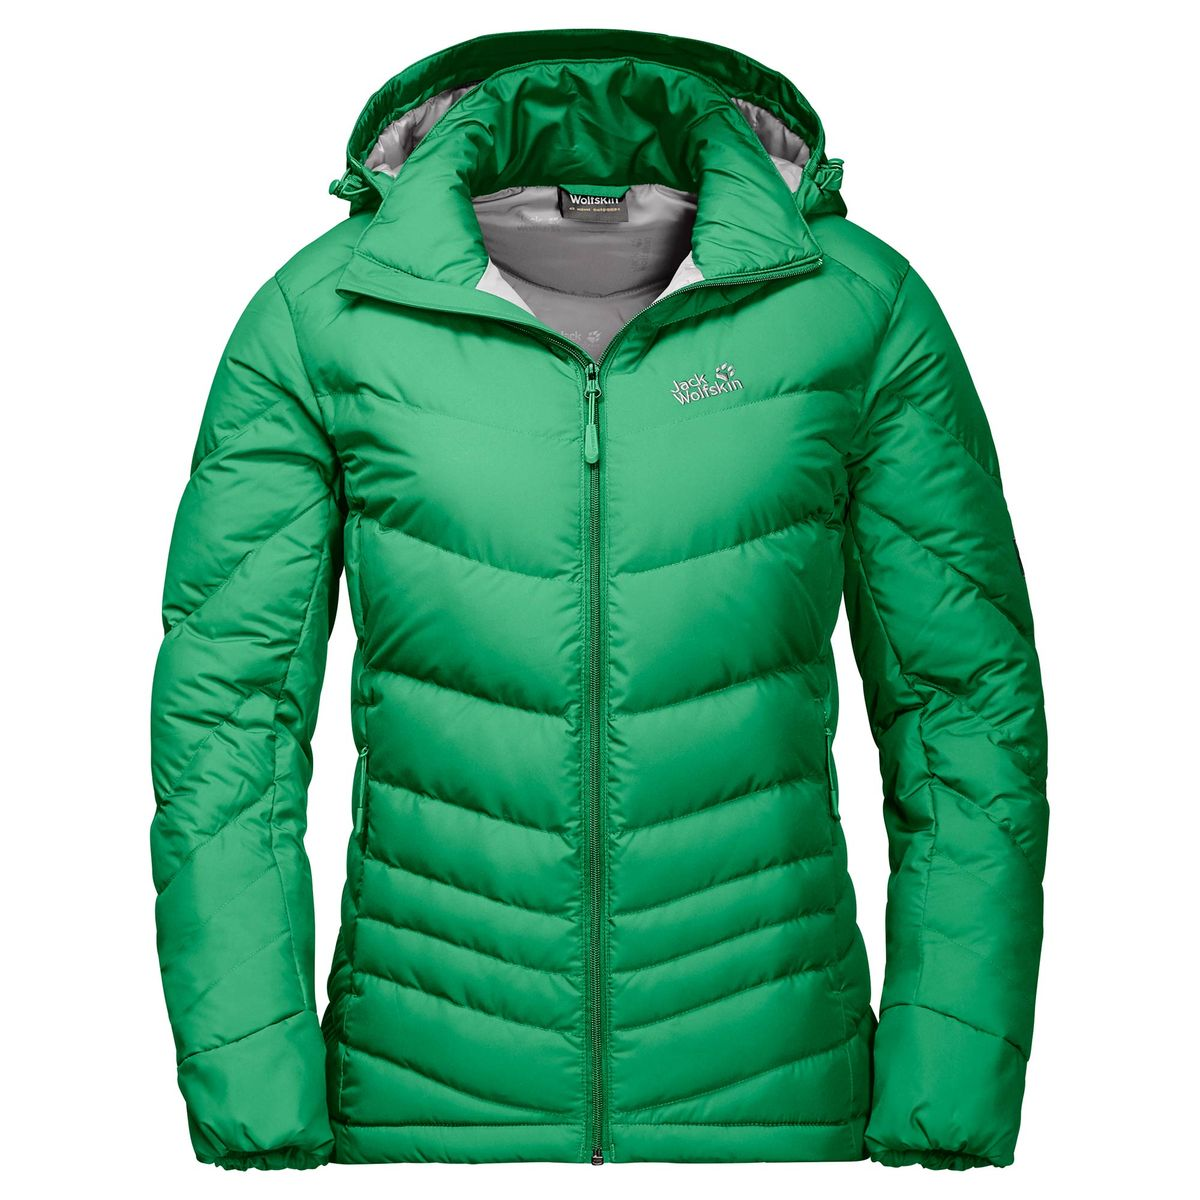 JACK WOLFSKIN SELENIUM women's winter jacket